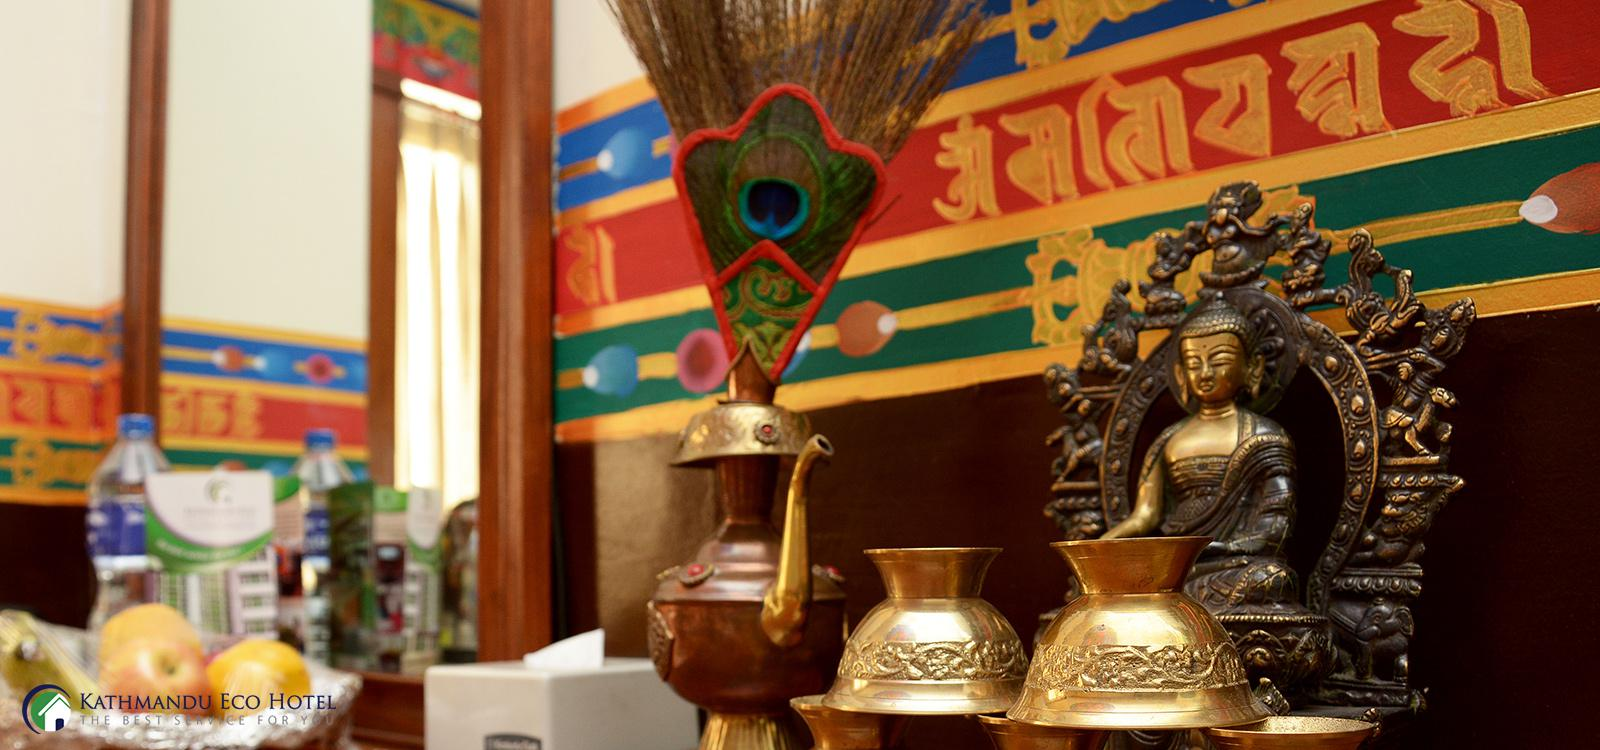 It's a pleasure to welcome you all to the Kathmandu Eco Hotel.